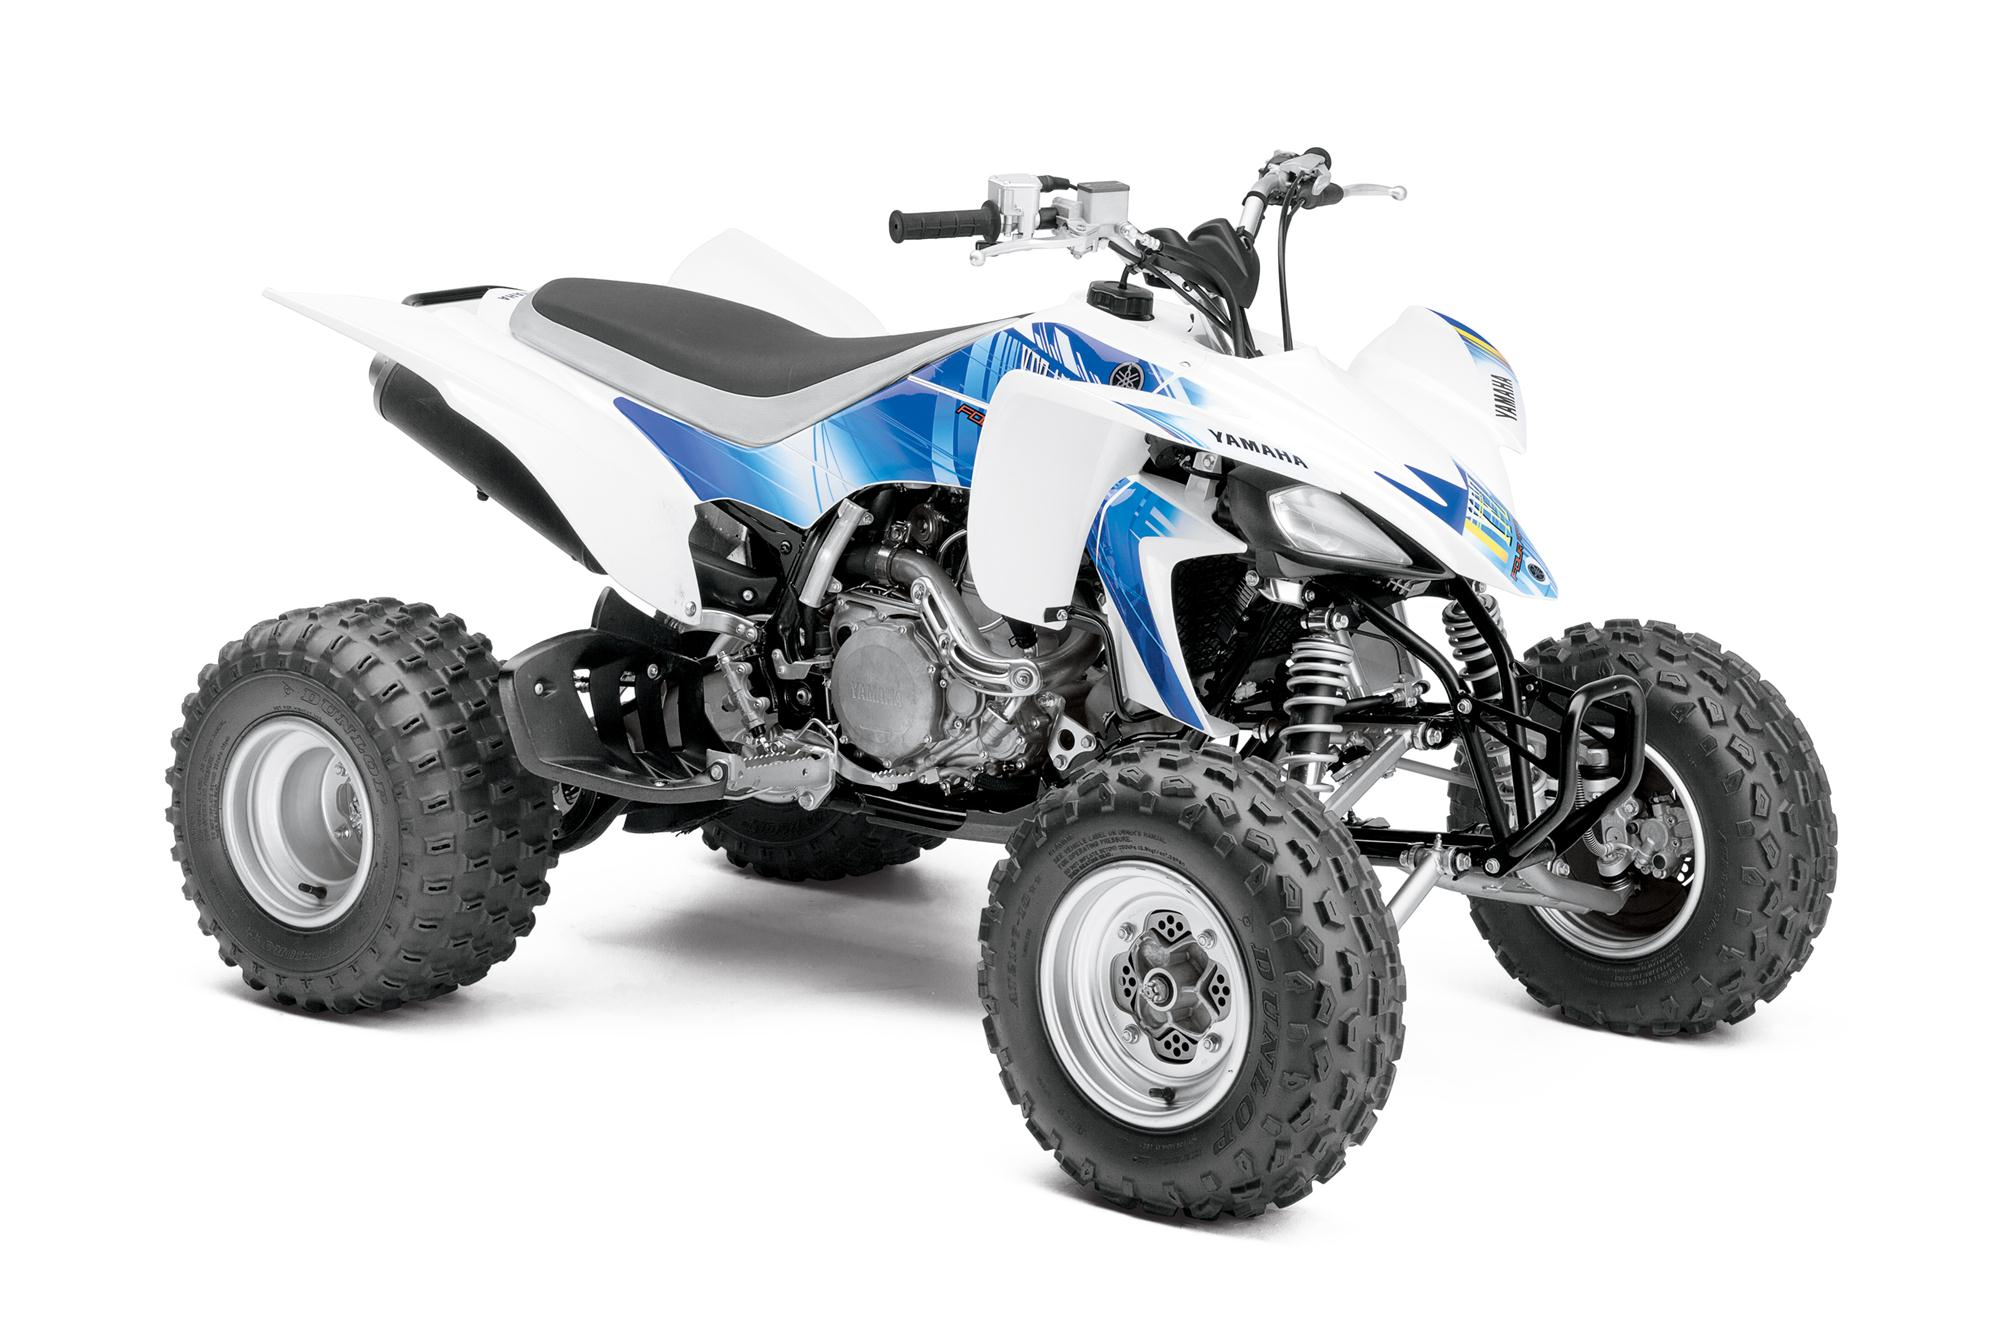 2013 yfz 450 reviews autos post